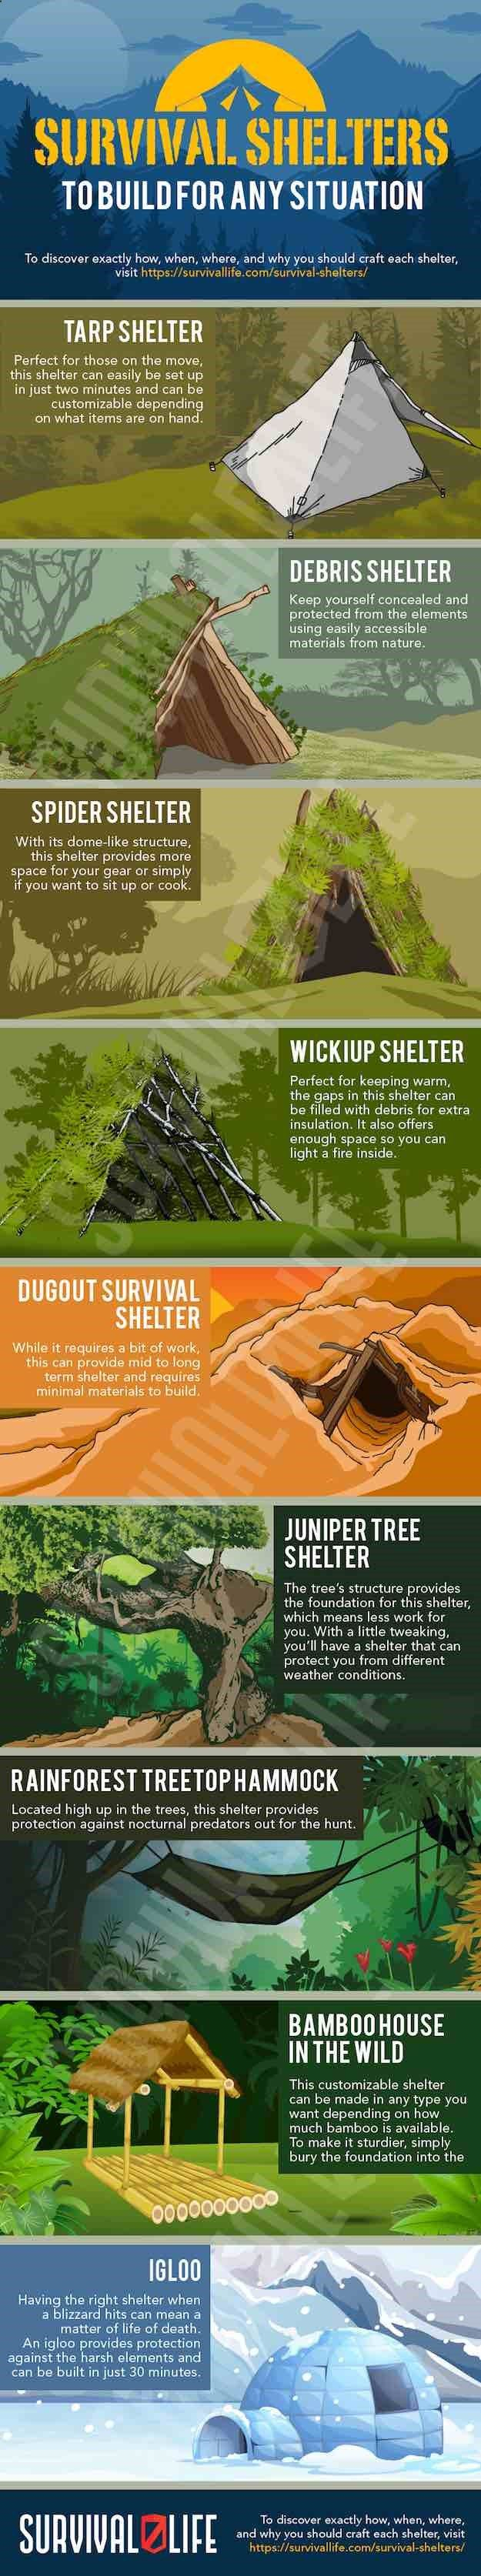 DIY Survival Shelters You Need To Know To Survive Anything | survivallife.com/...